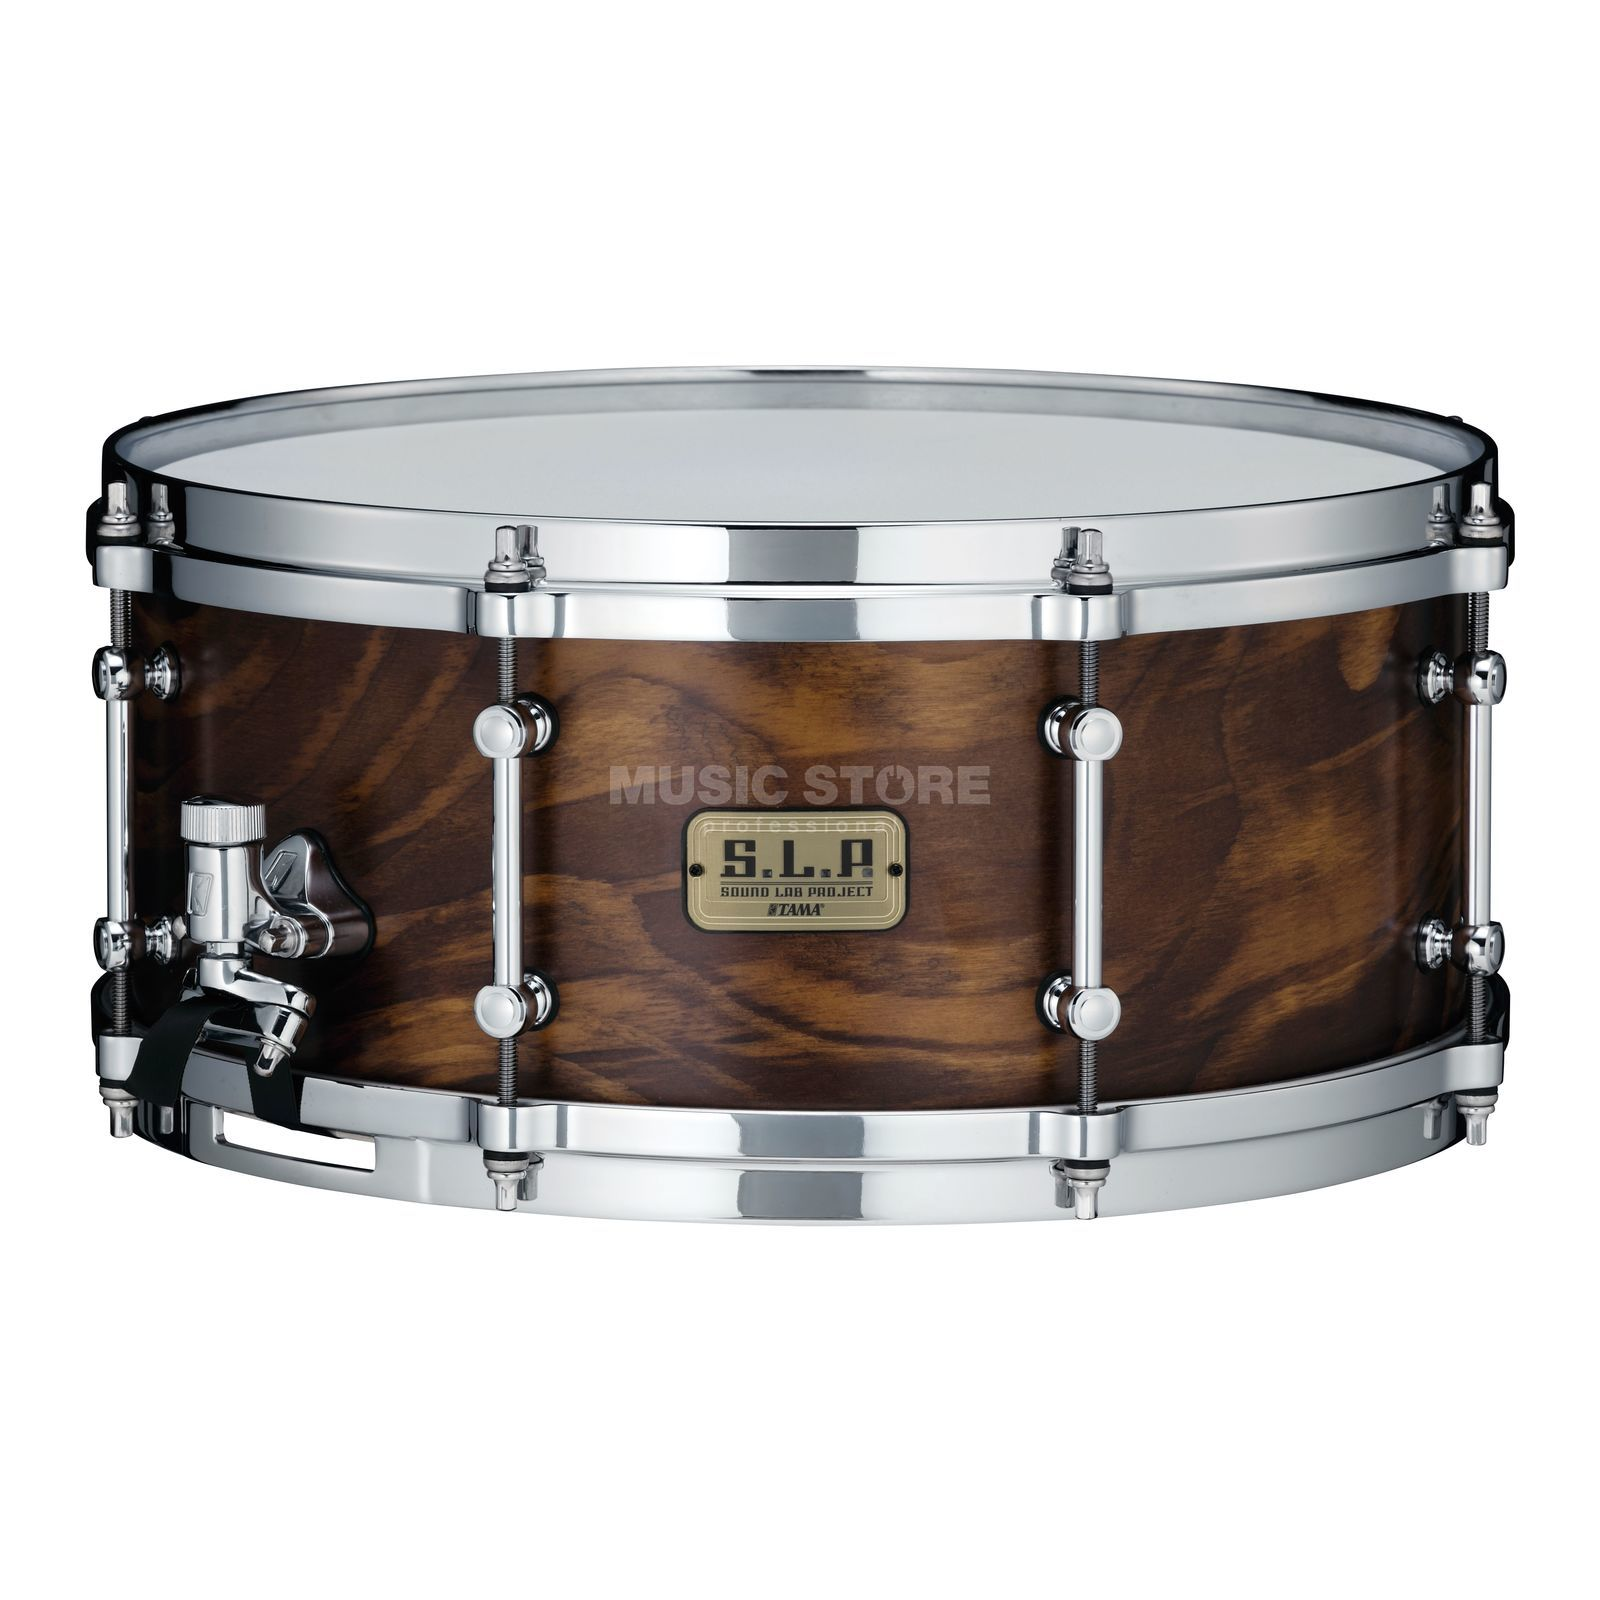 Tama S.L.P. Snare LSP146-WSS, Wild Satin Spruce Product Image